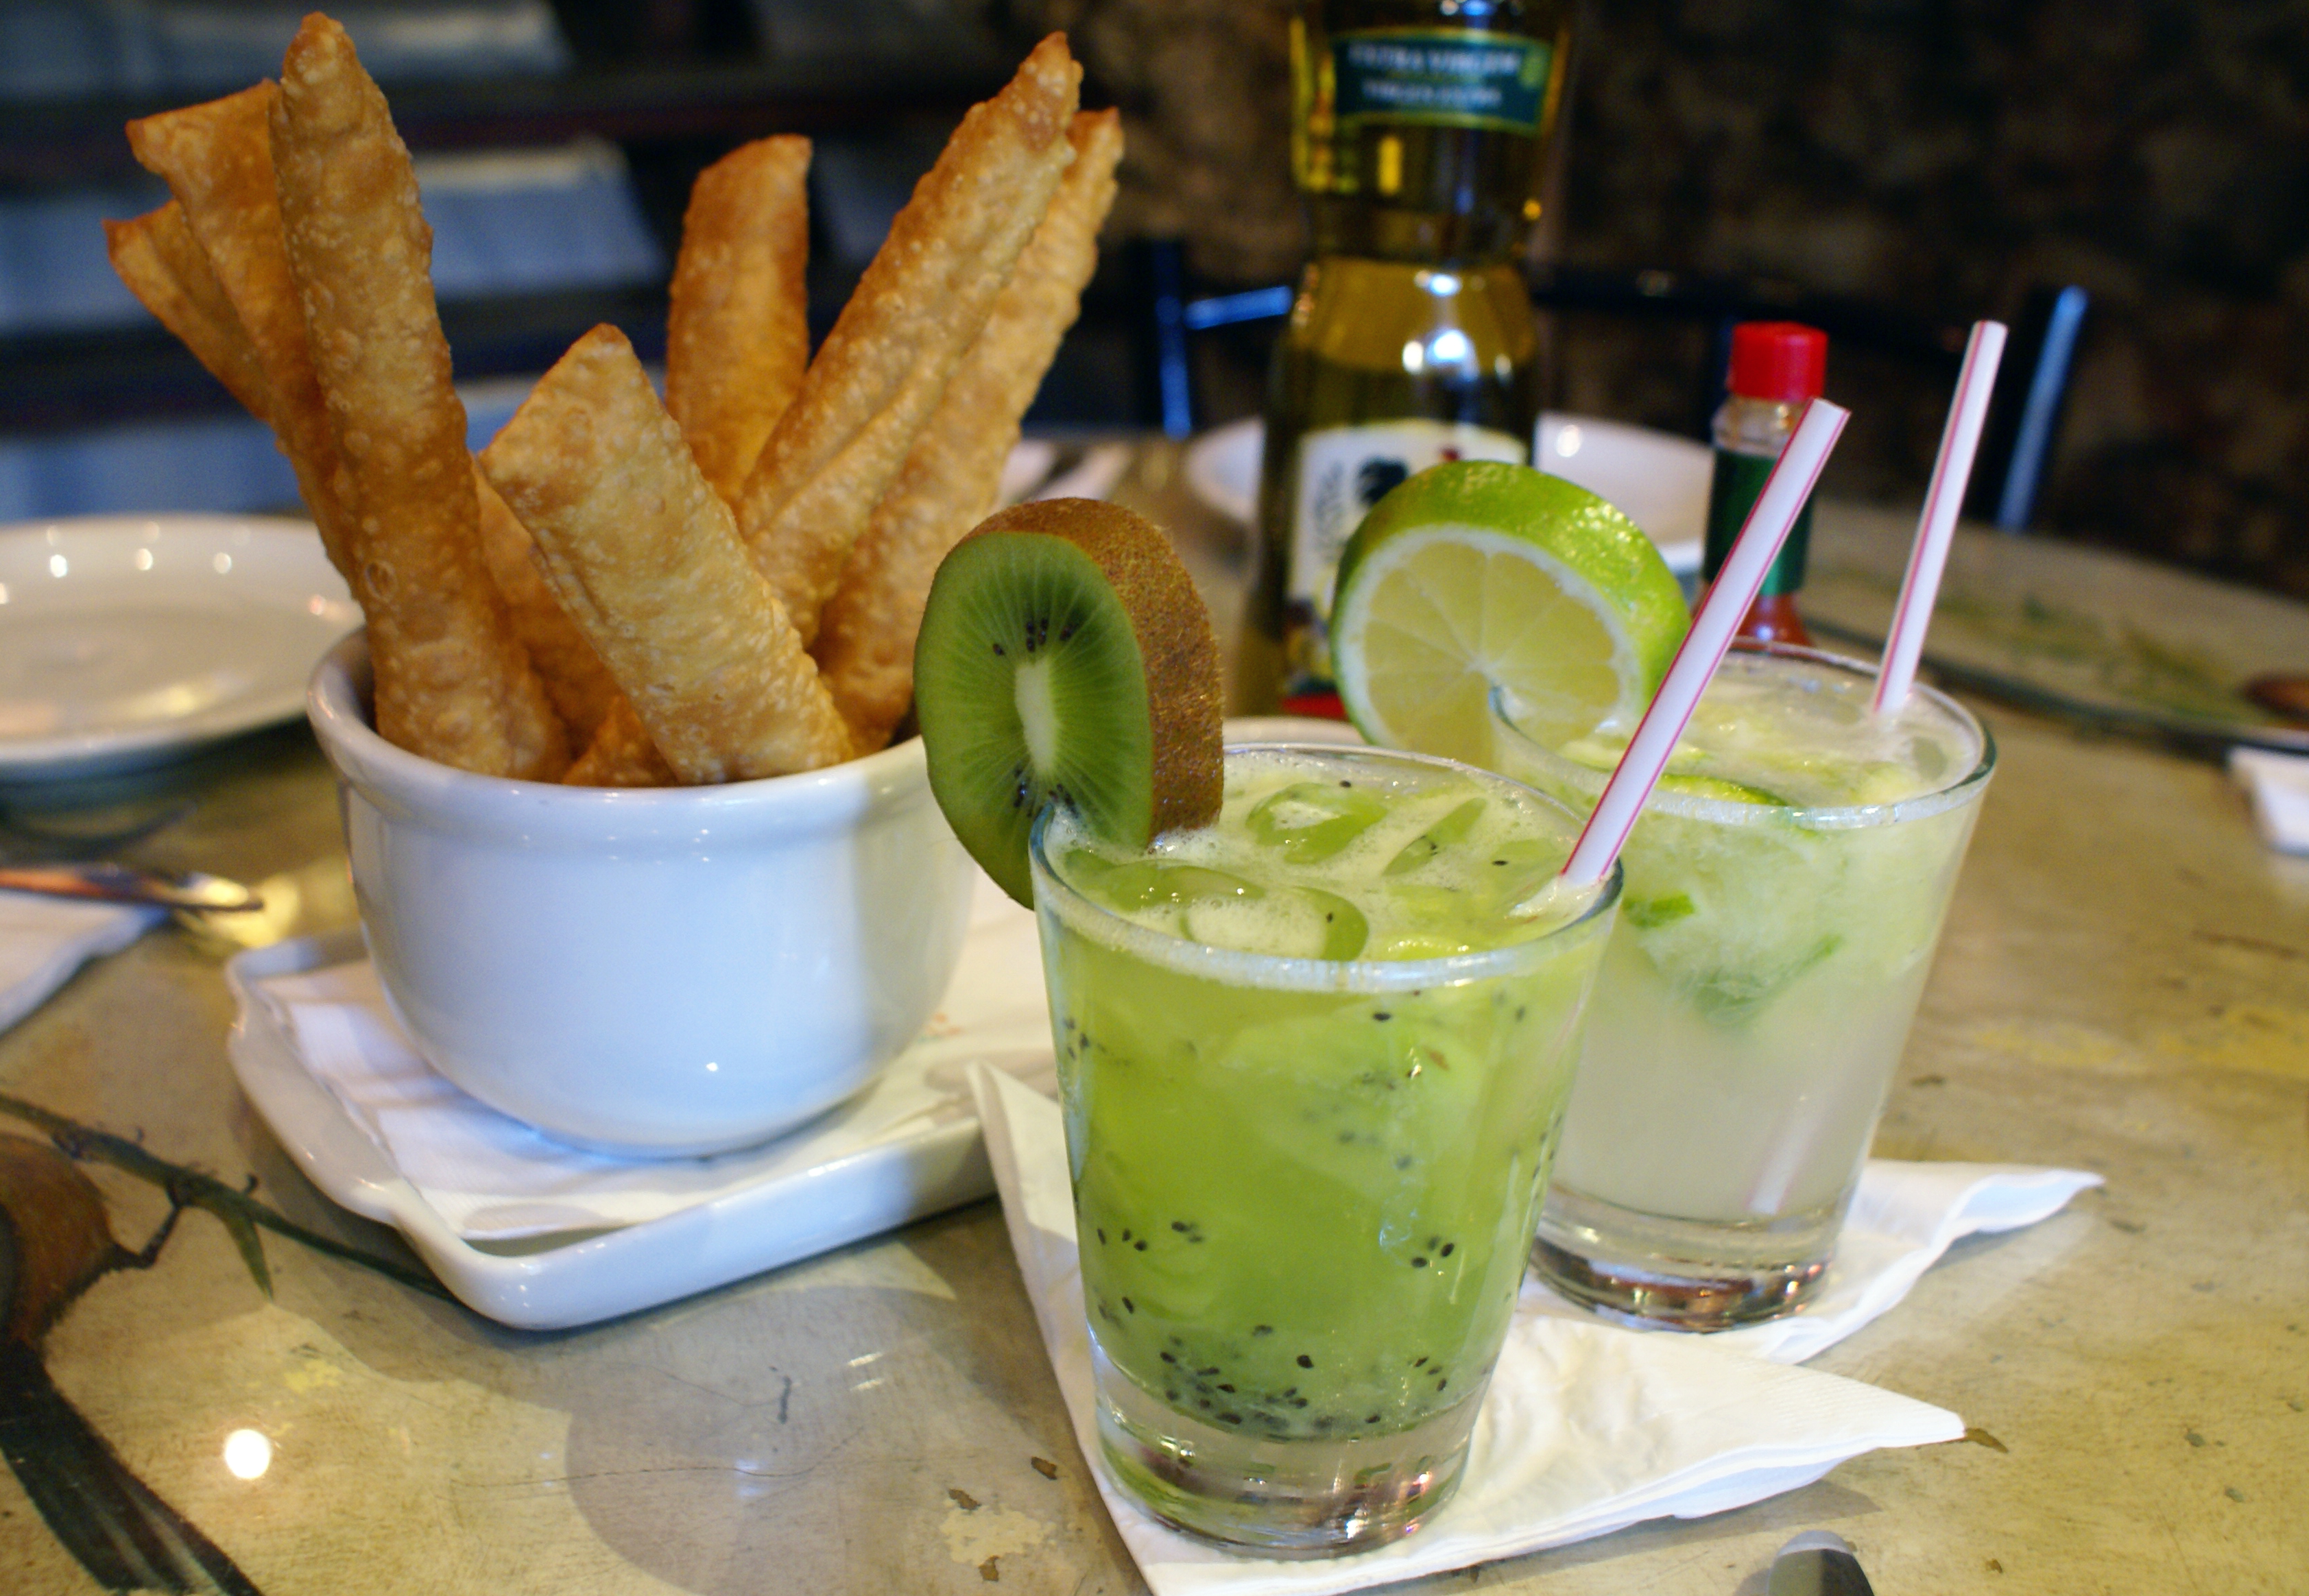 rio brazil food janeiro facts drink caipirinha botequim foods cocktail national zimmern andrew cachaca sugar caipirinhas normally distilled crushed fermented